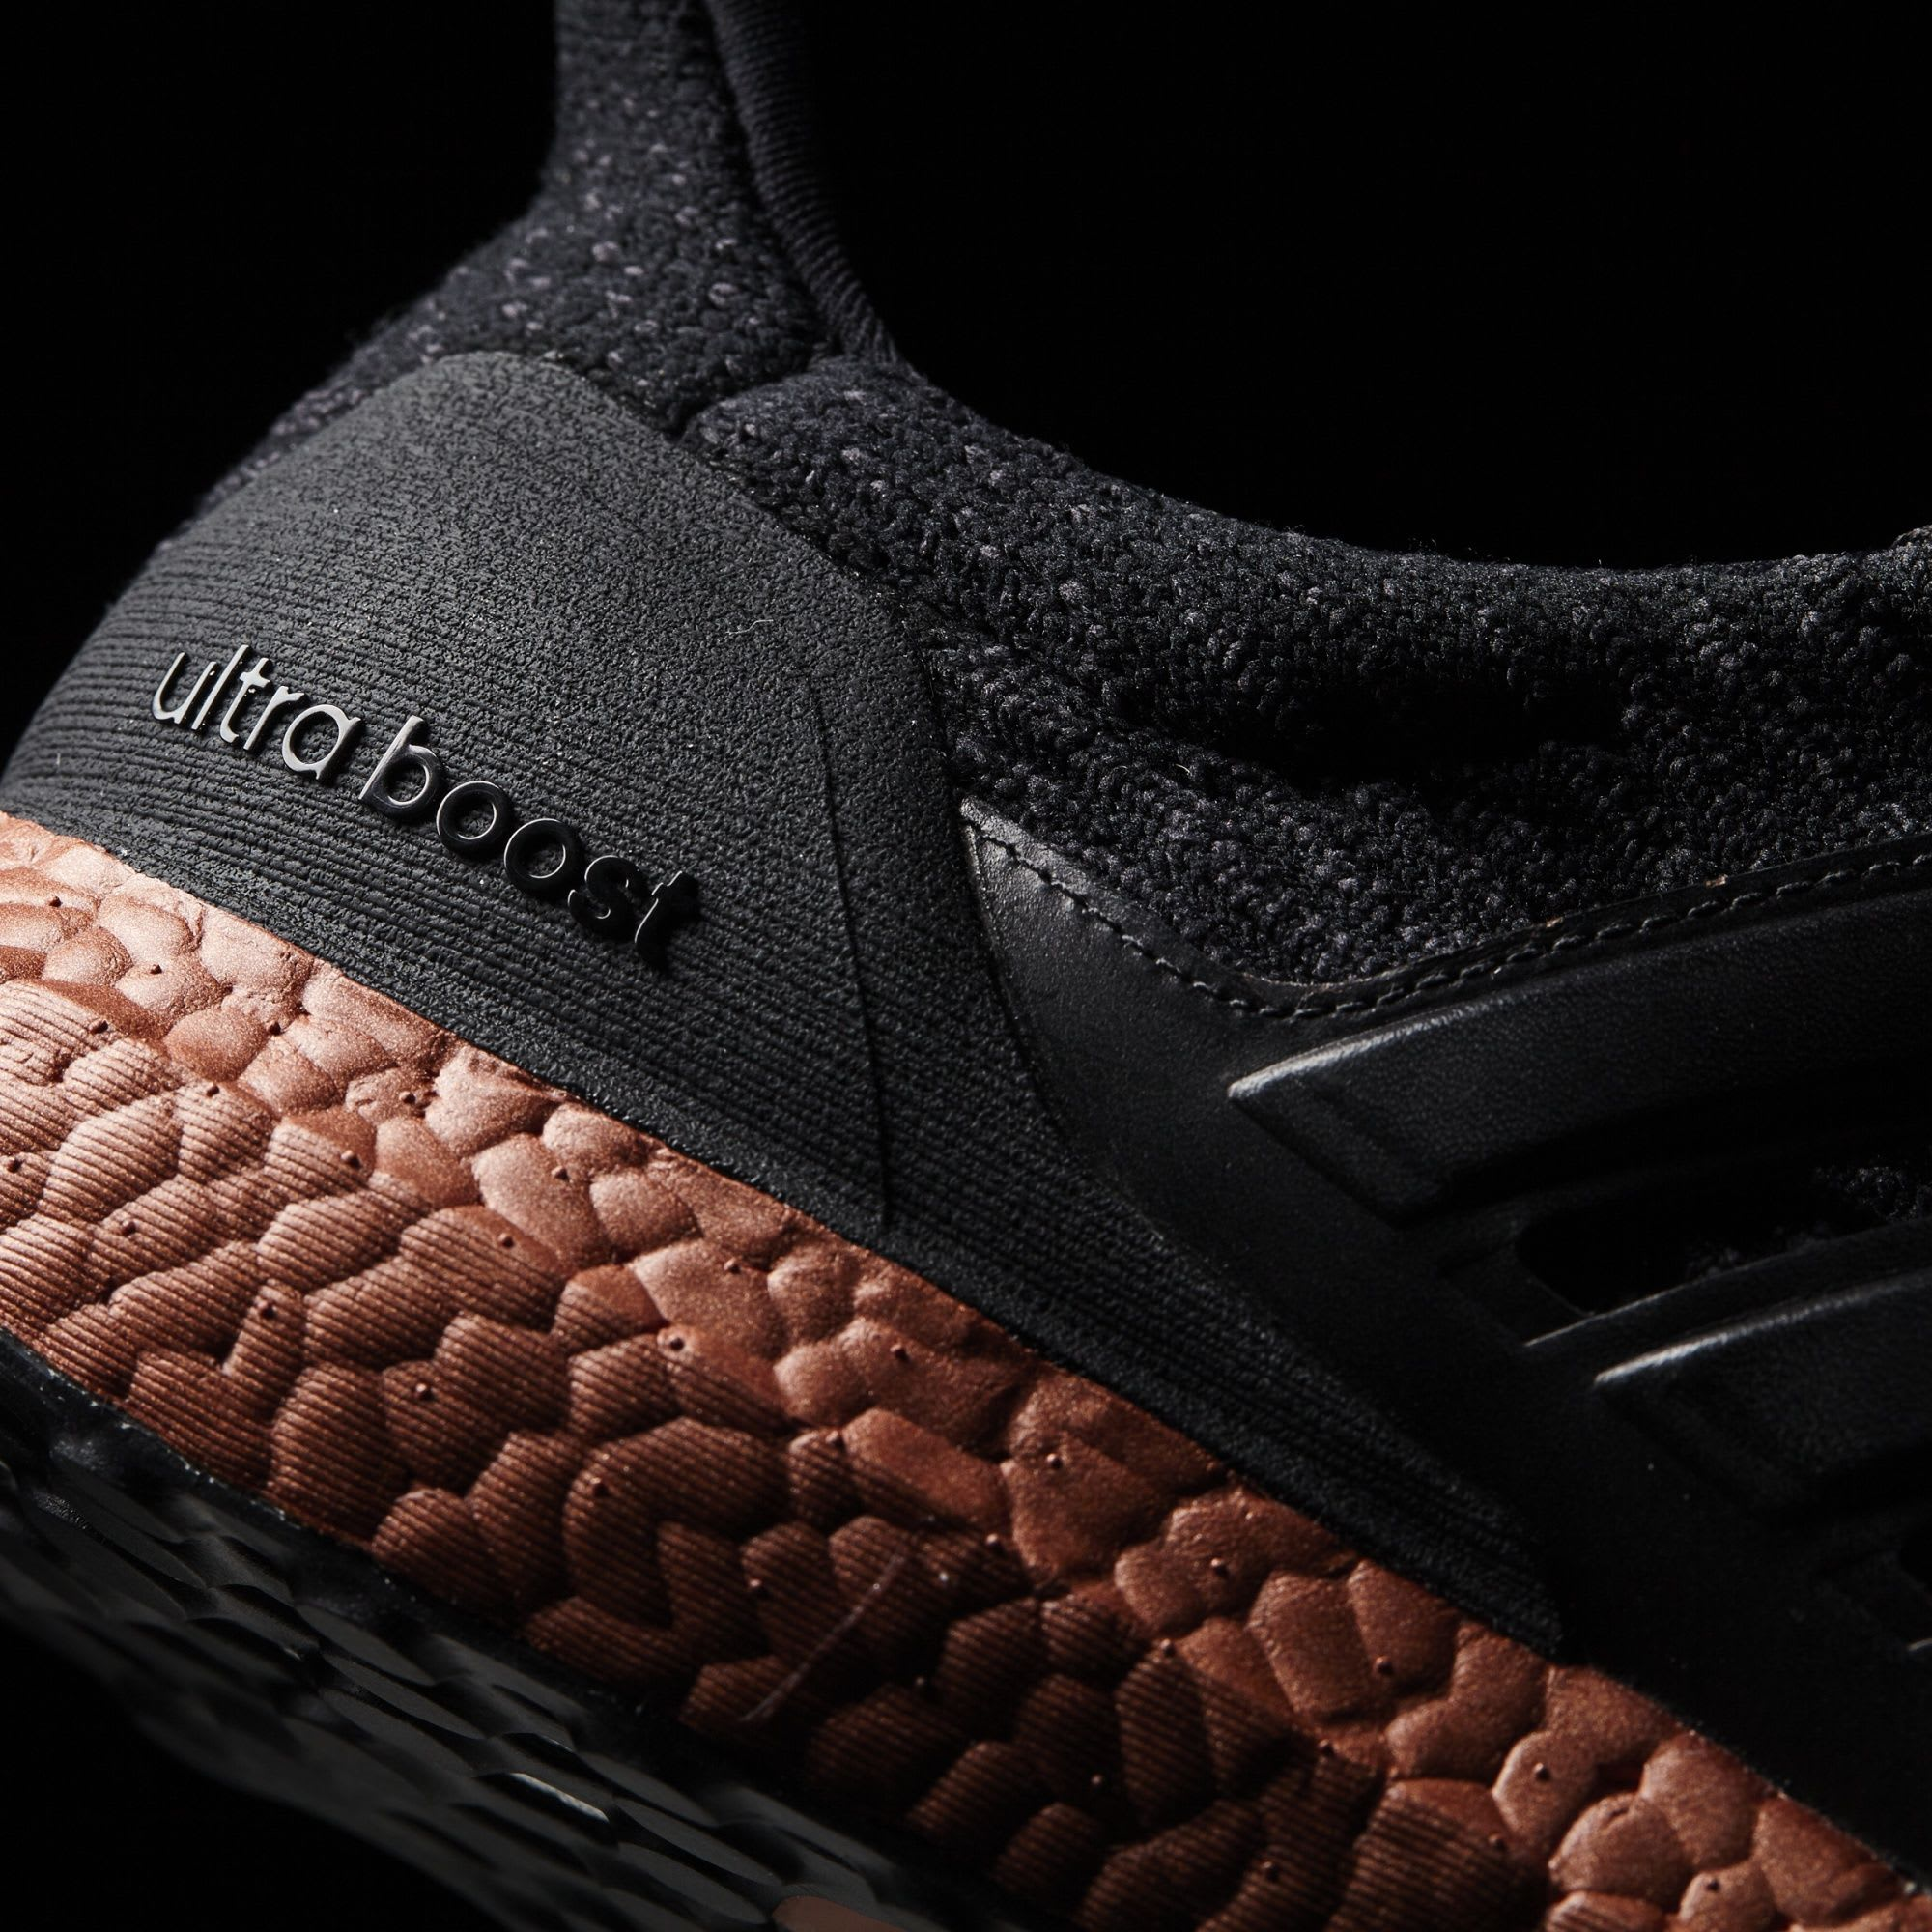 Adidas Ultra Boost 3.0 Black Bronze Sole Release Date Midsole